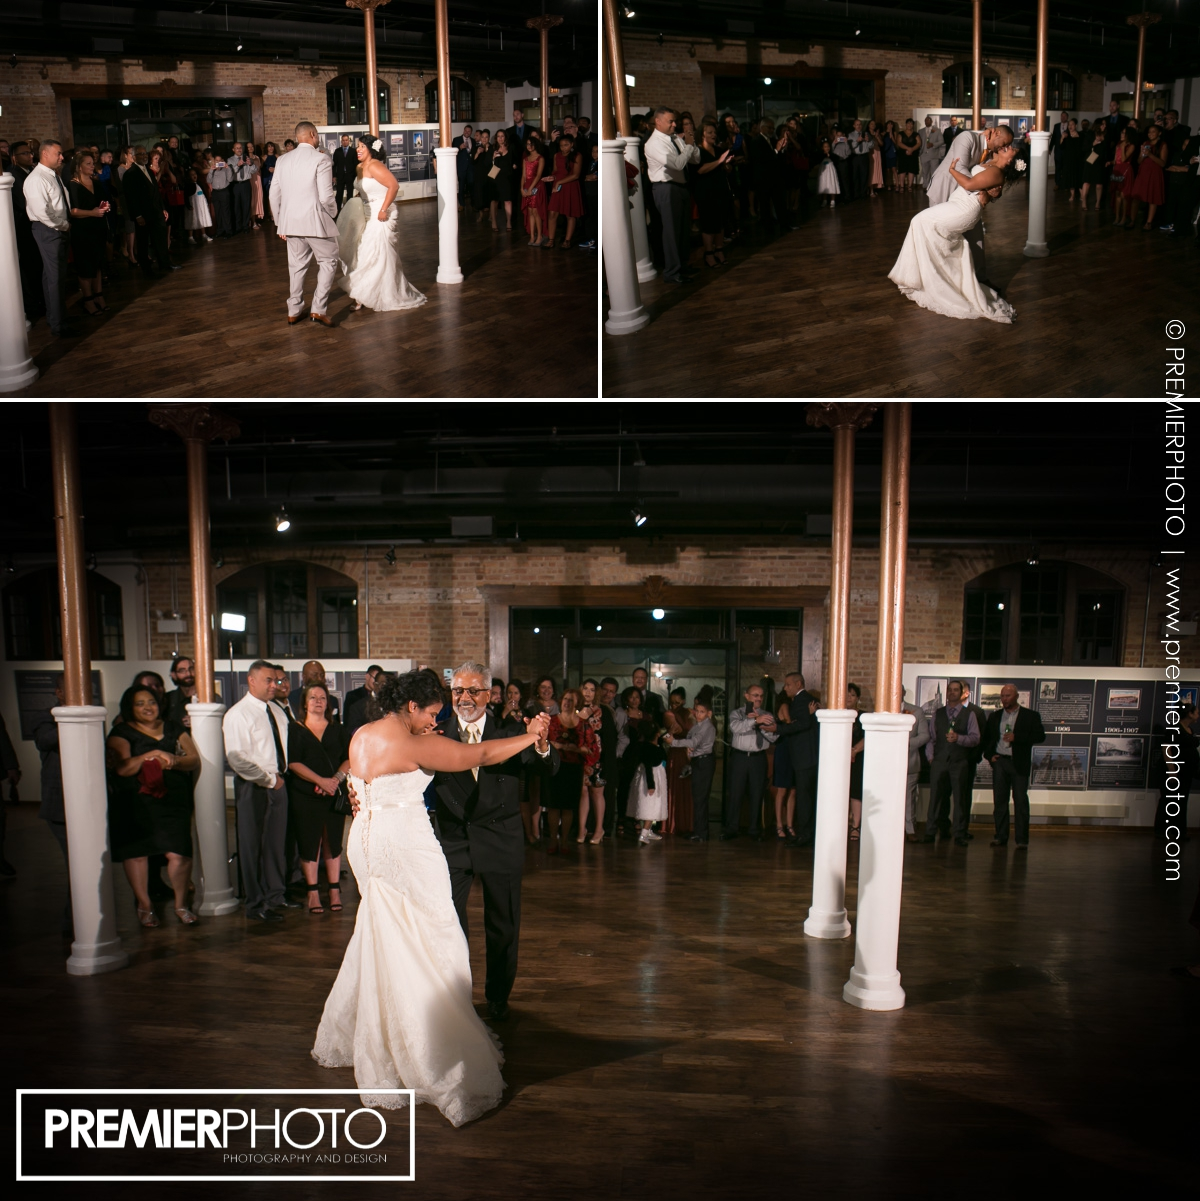 first dance of bride and her father on latino music at National Museum of Puerto Rican Arts & Culture Chicago